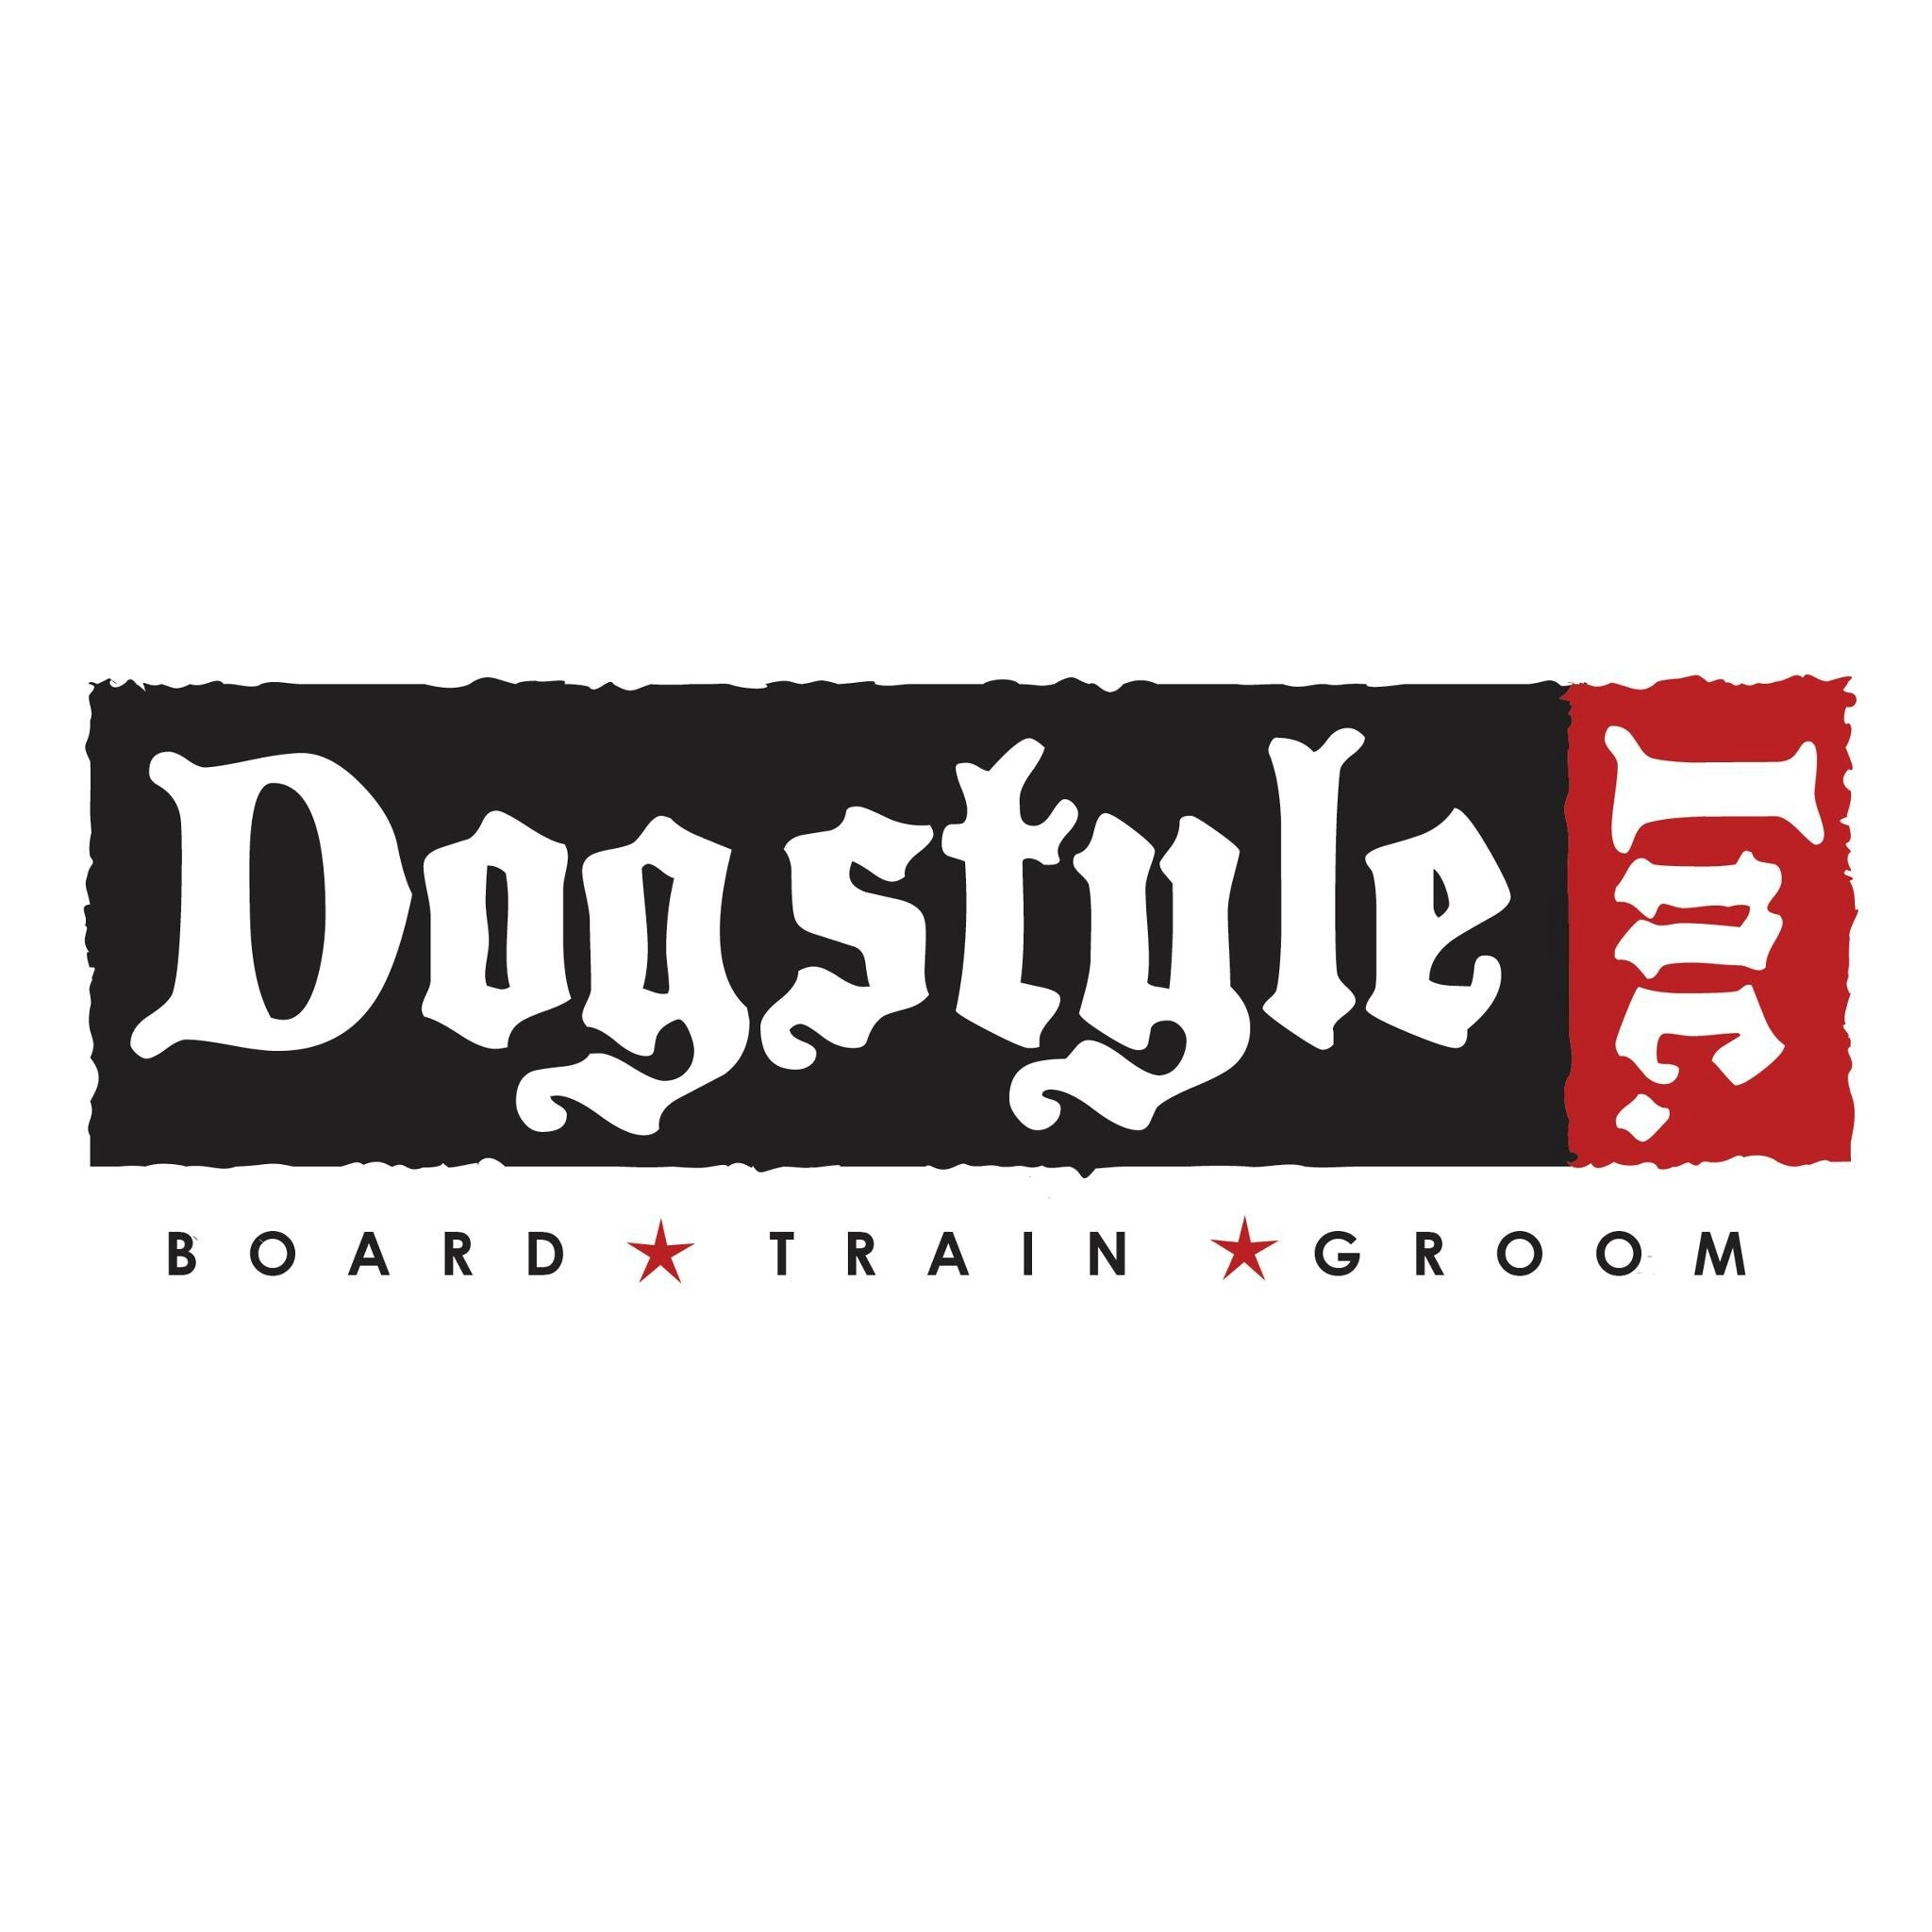 Dogstyle Inc